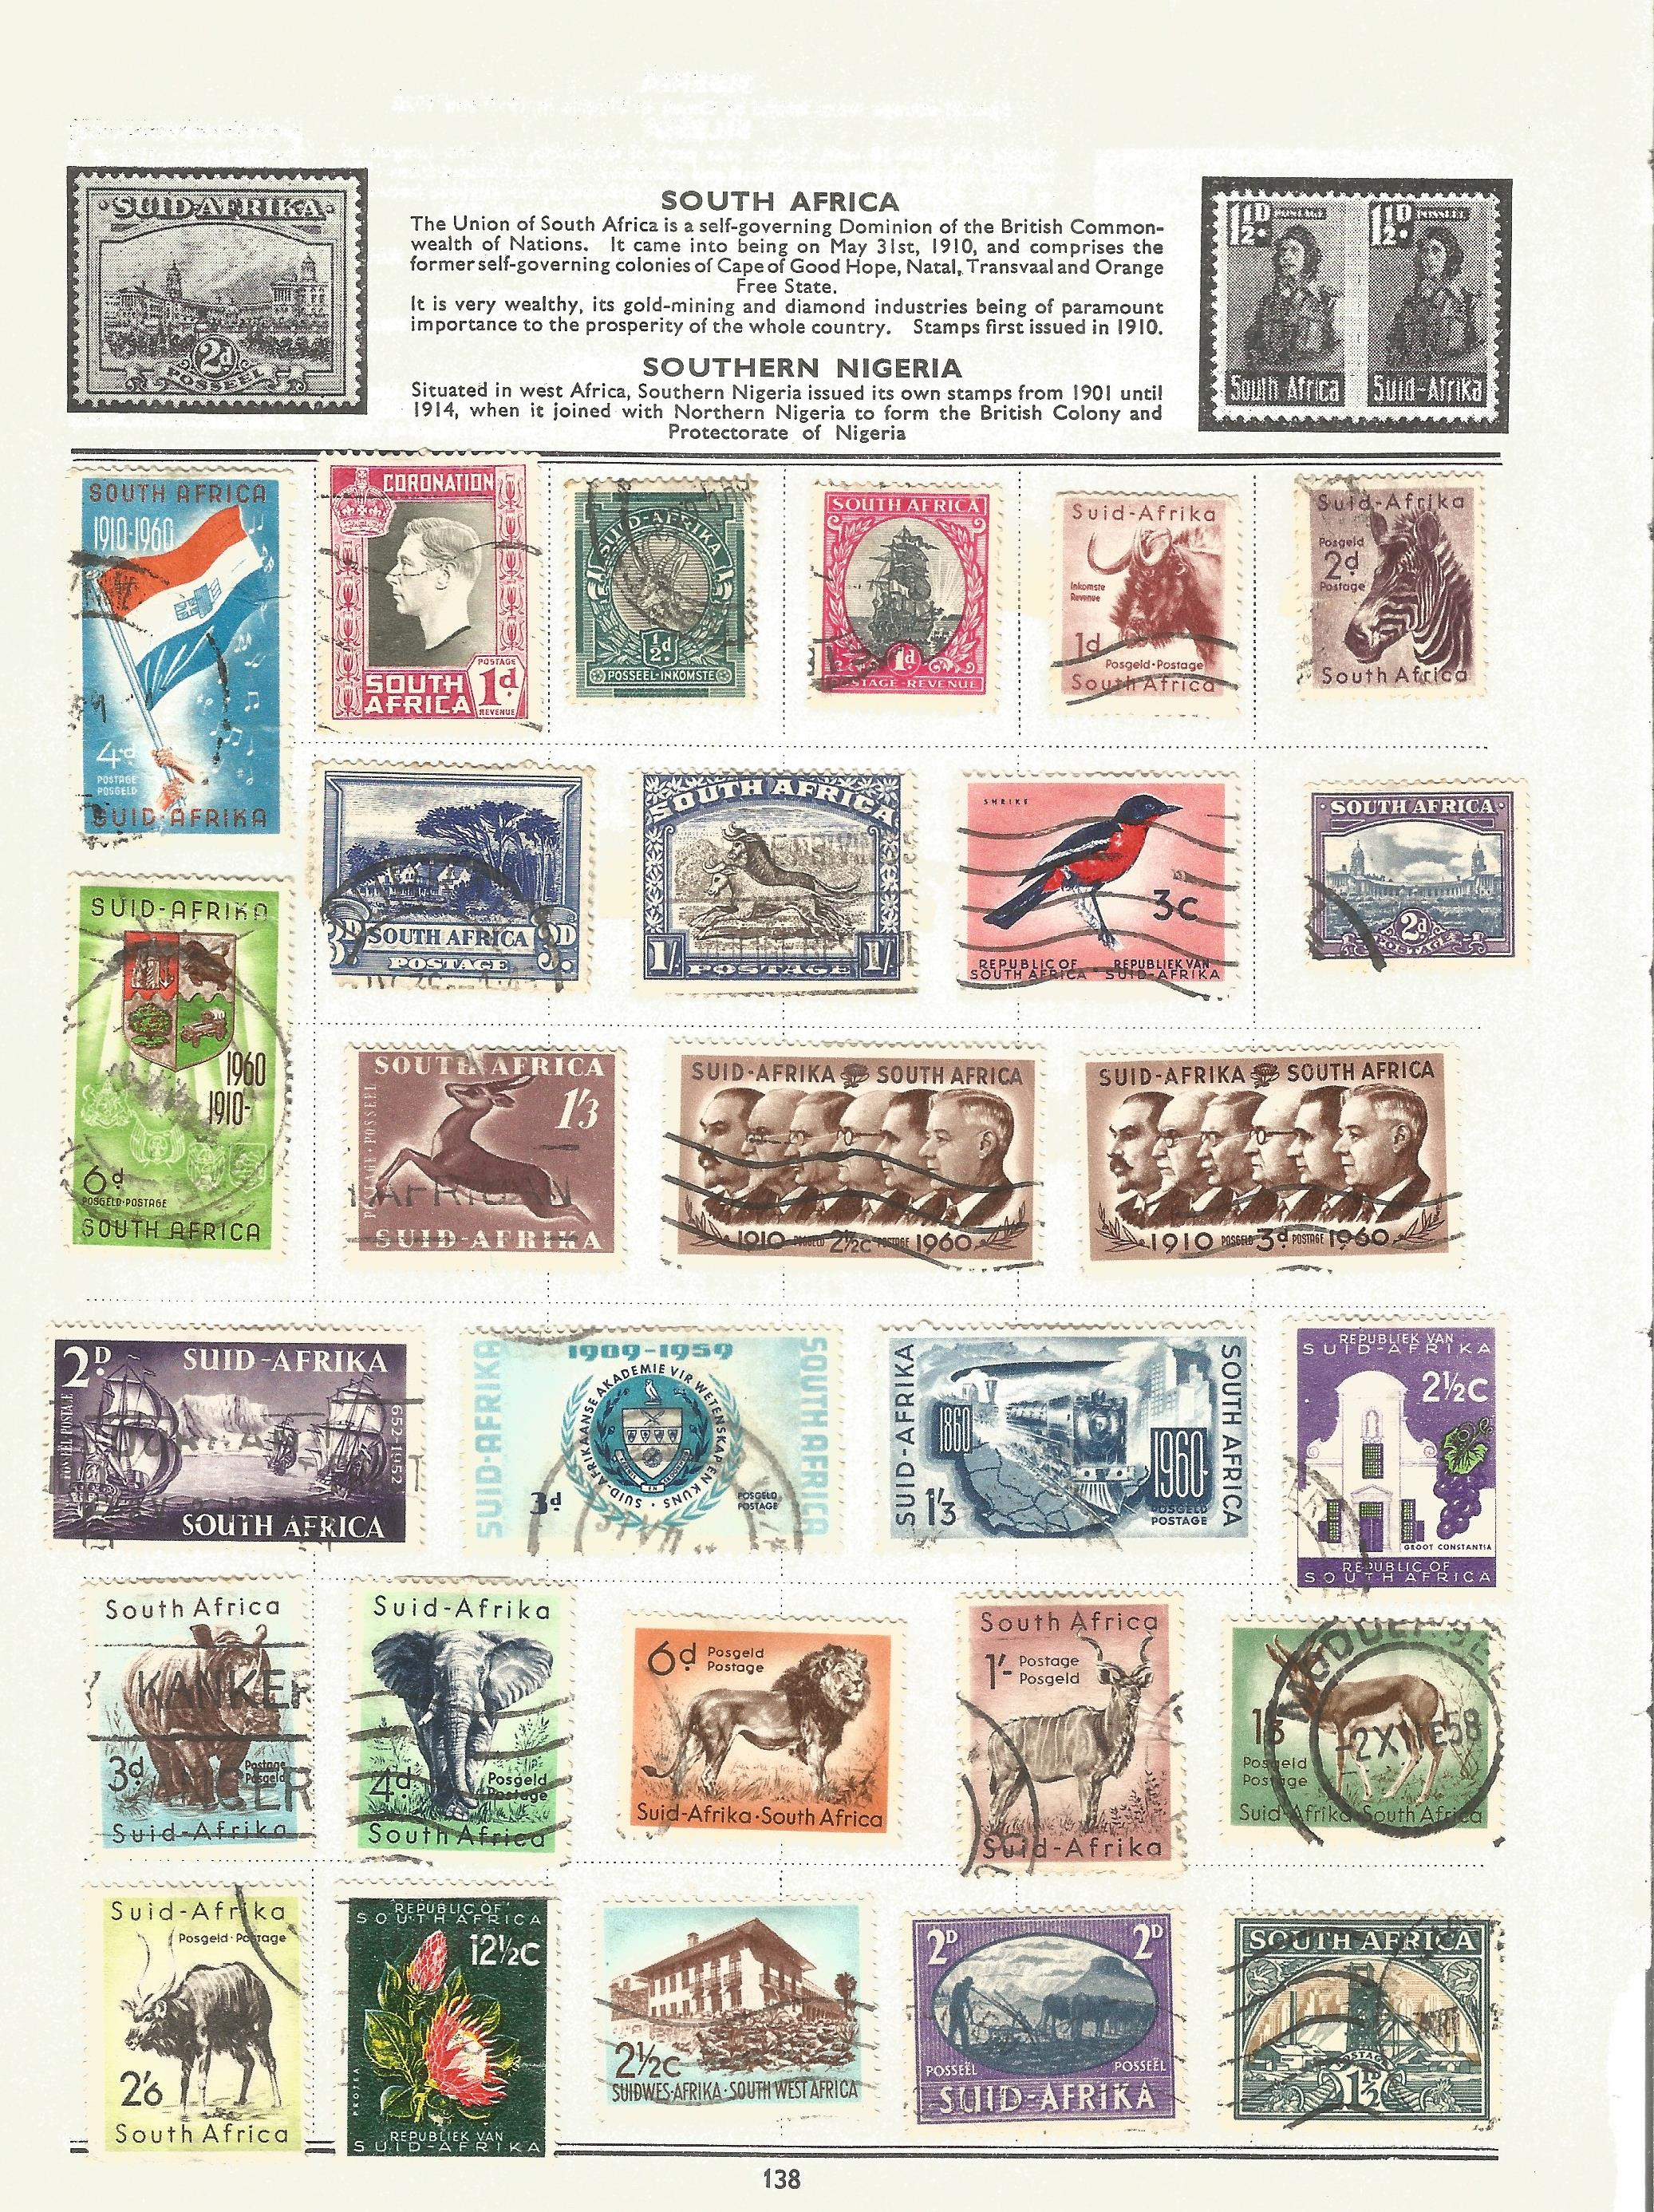 BCW stamp collection on 17 loose pages. Includes stamps from British Virgin Islands, Zanzibar, South